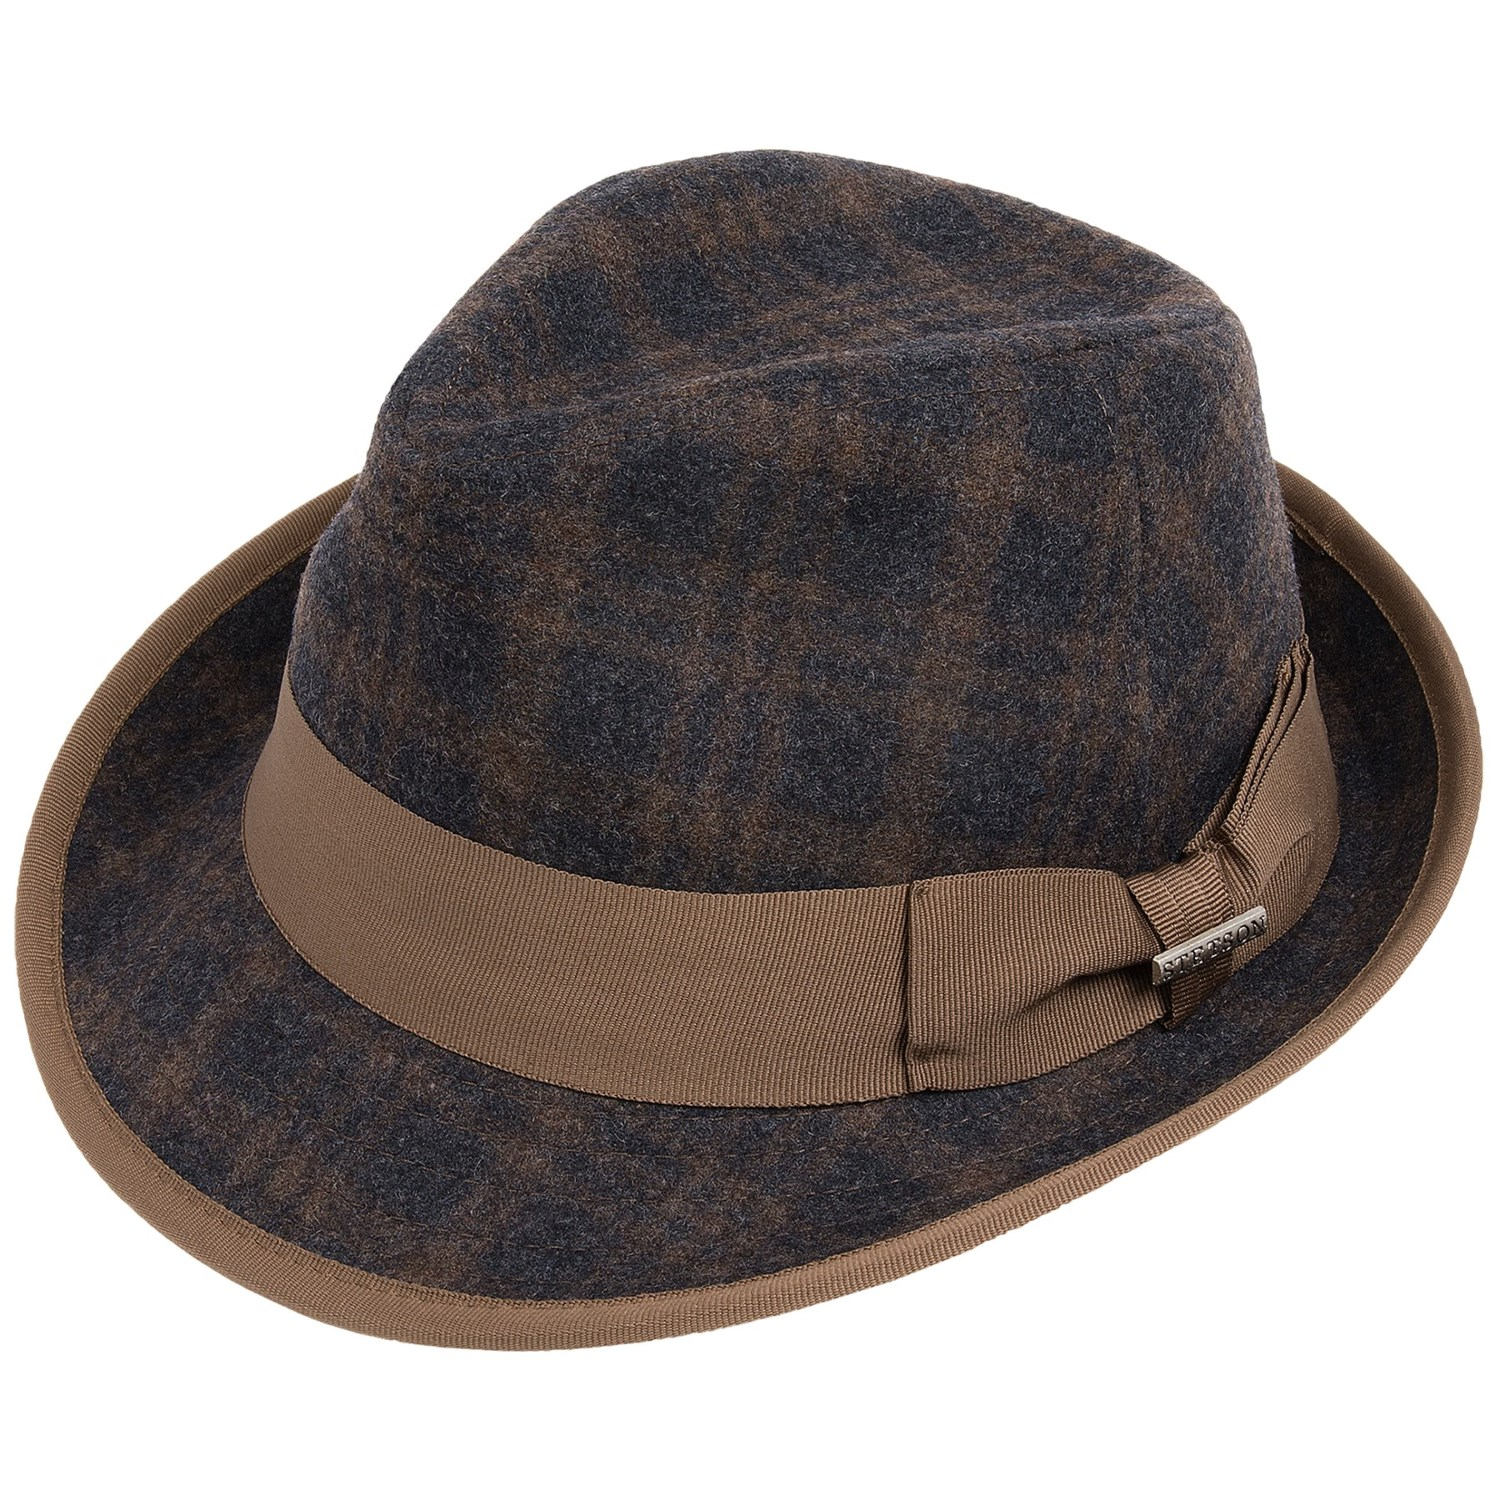 Mens Wool Hats Sale: Save Up to 60% Off! Shop truedfil3gz.gq's huge selection of Wool Hats for Men - Over styles available. FREE Shipping & Exchanges, and a % price guarantee! Free Shipping. No Minimum. Advanced Search. Search truedfil3gz.gq ShoeFan Rewards. Your Shopping Cart has. 0.